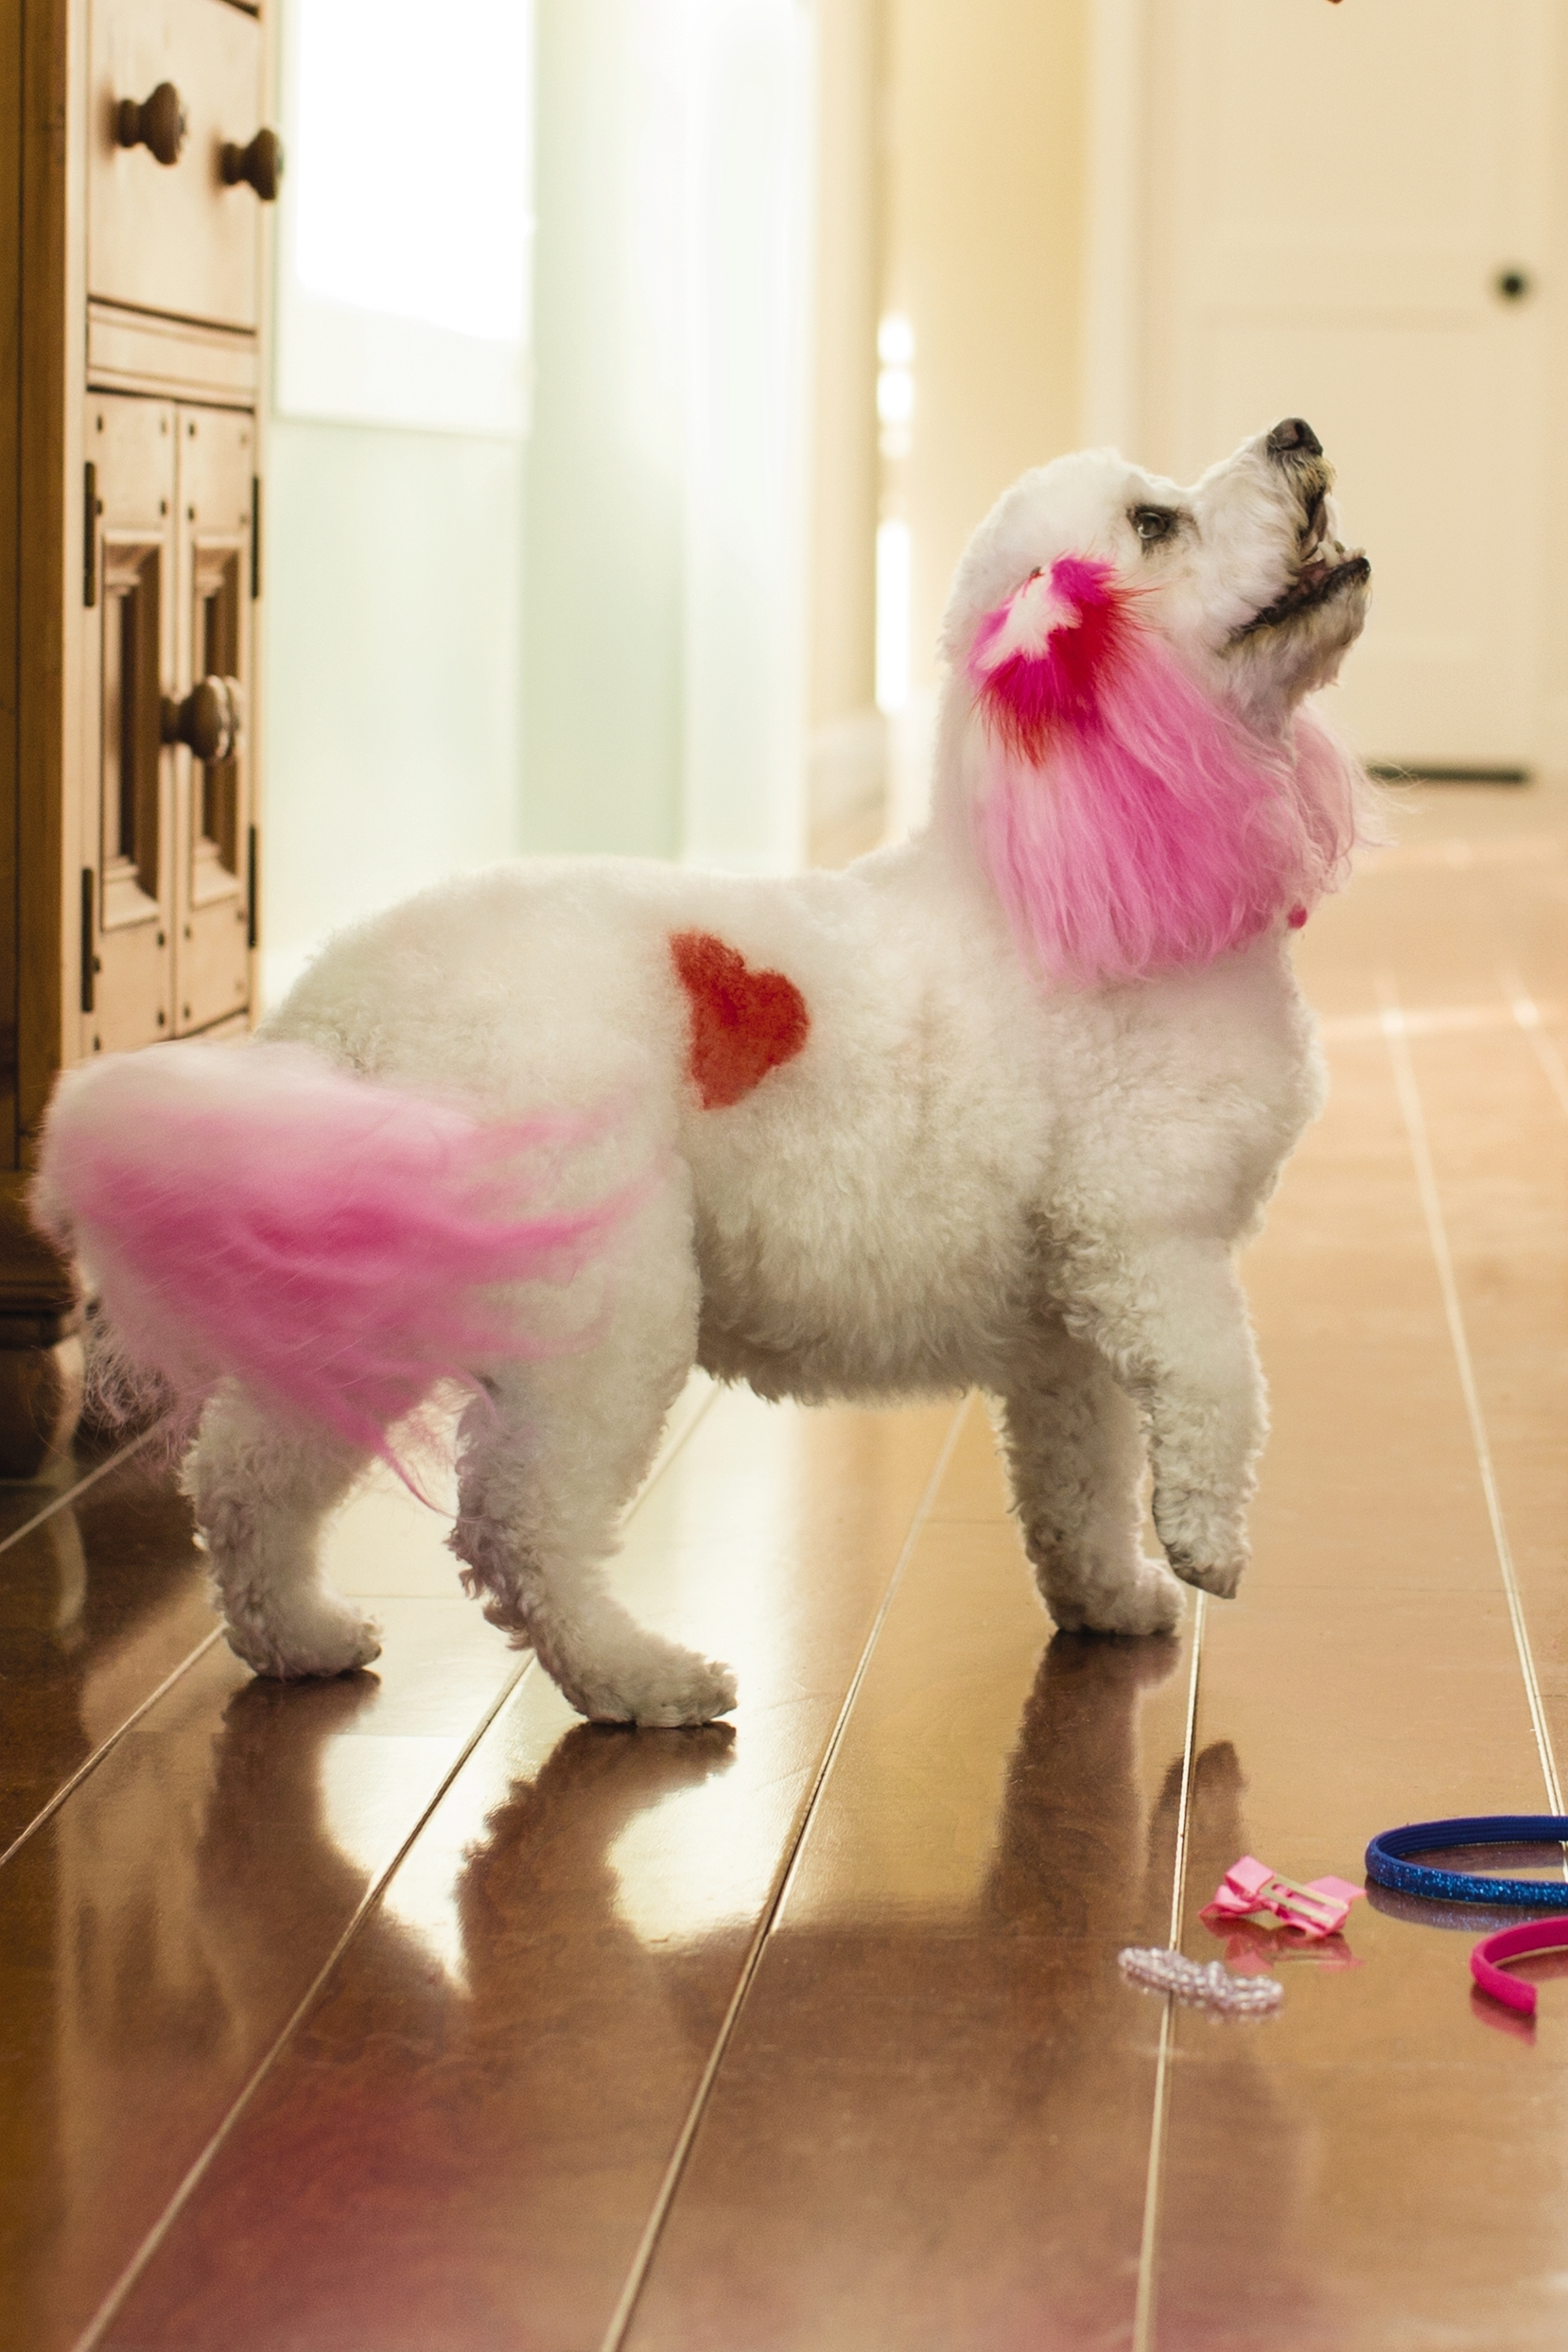 Petsmart Introduces Creative Grooming Options To Express Your Dogs